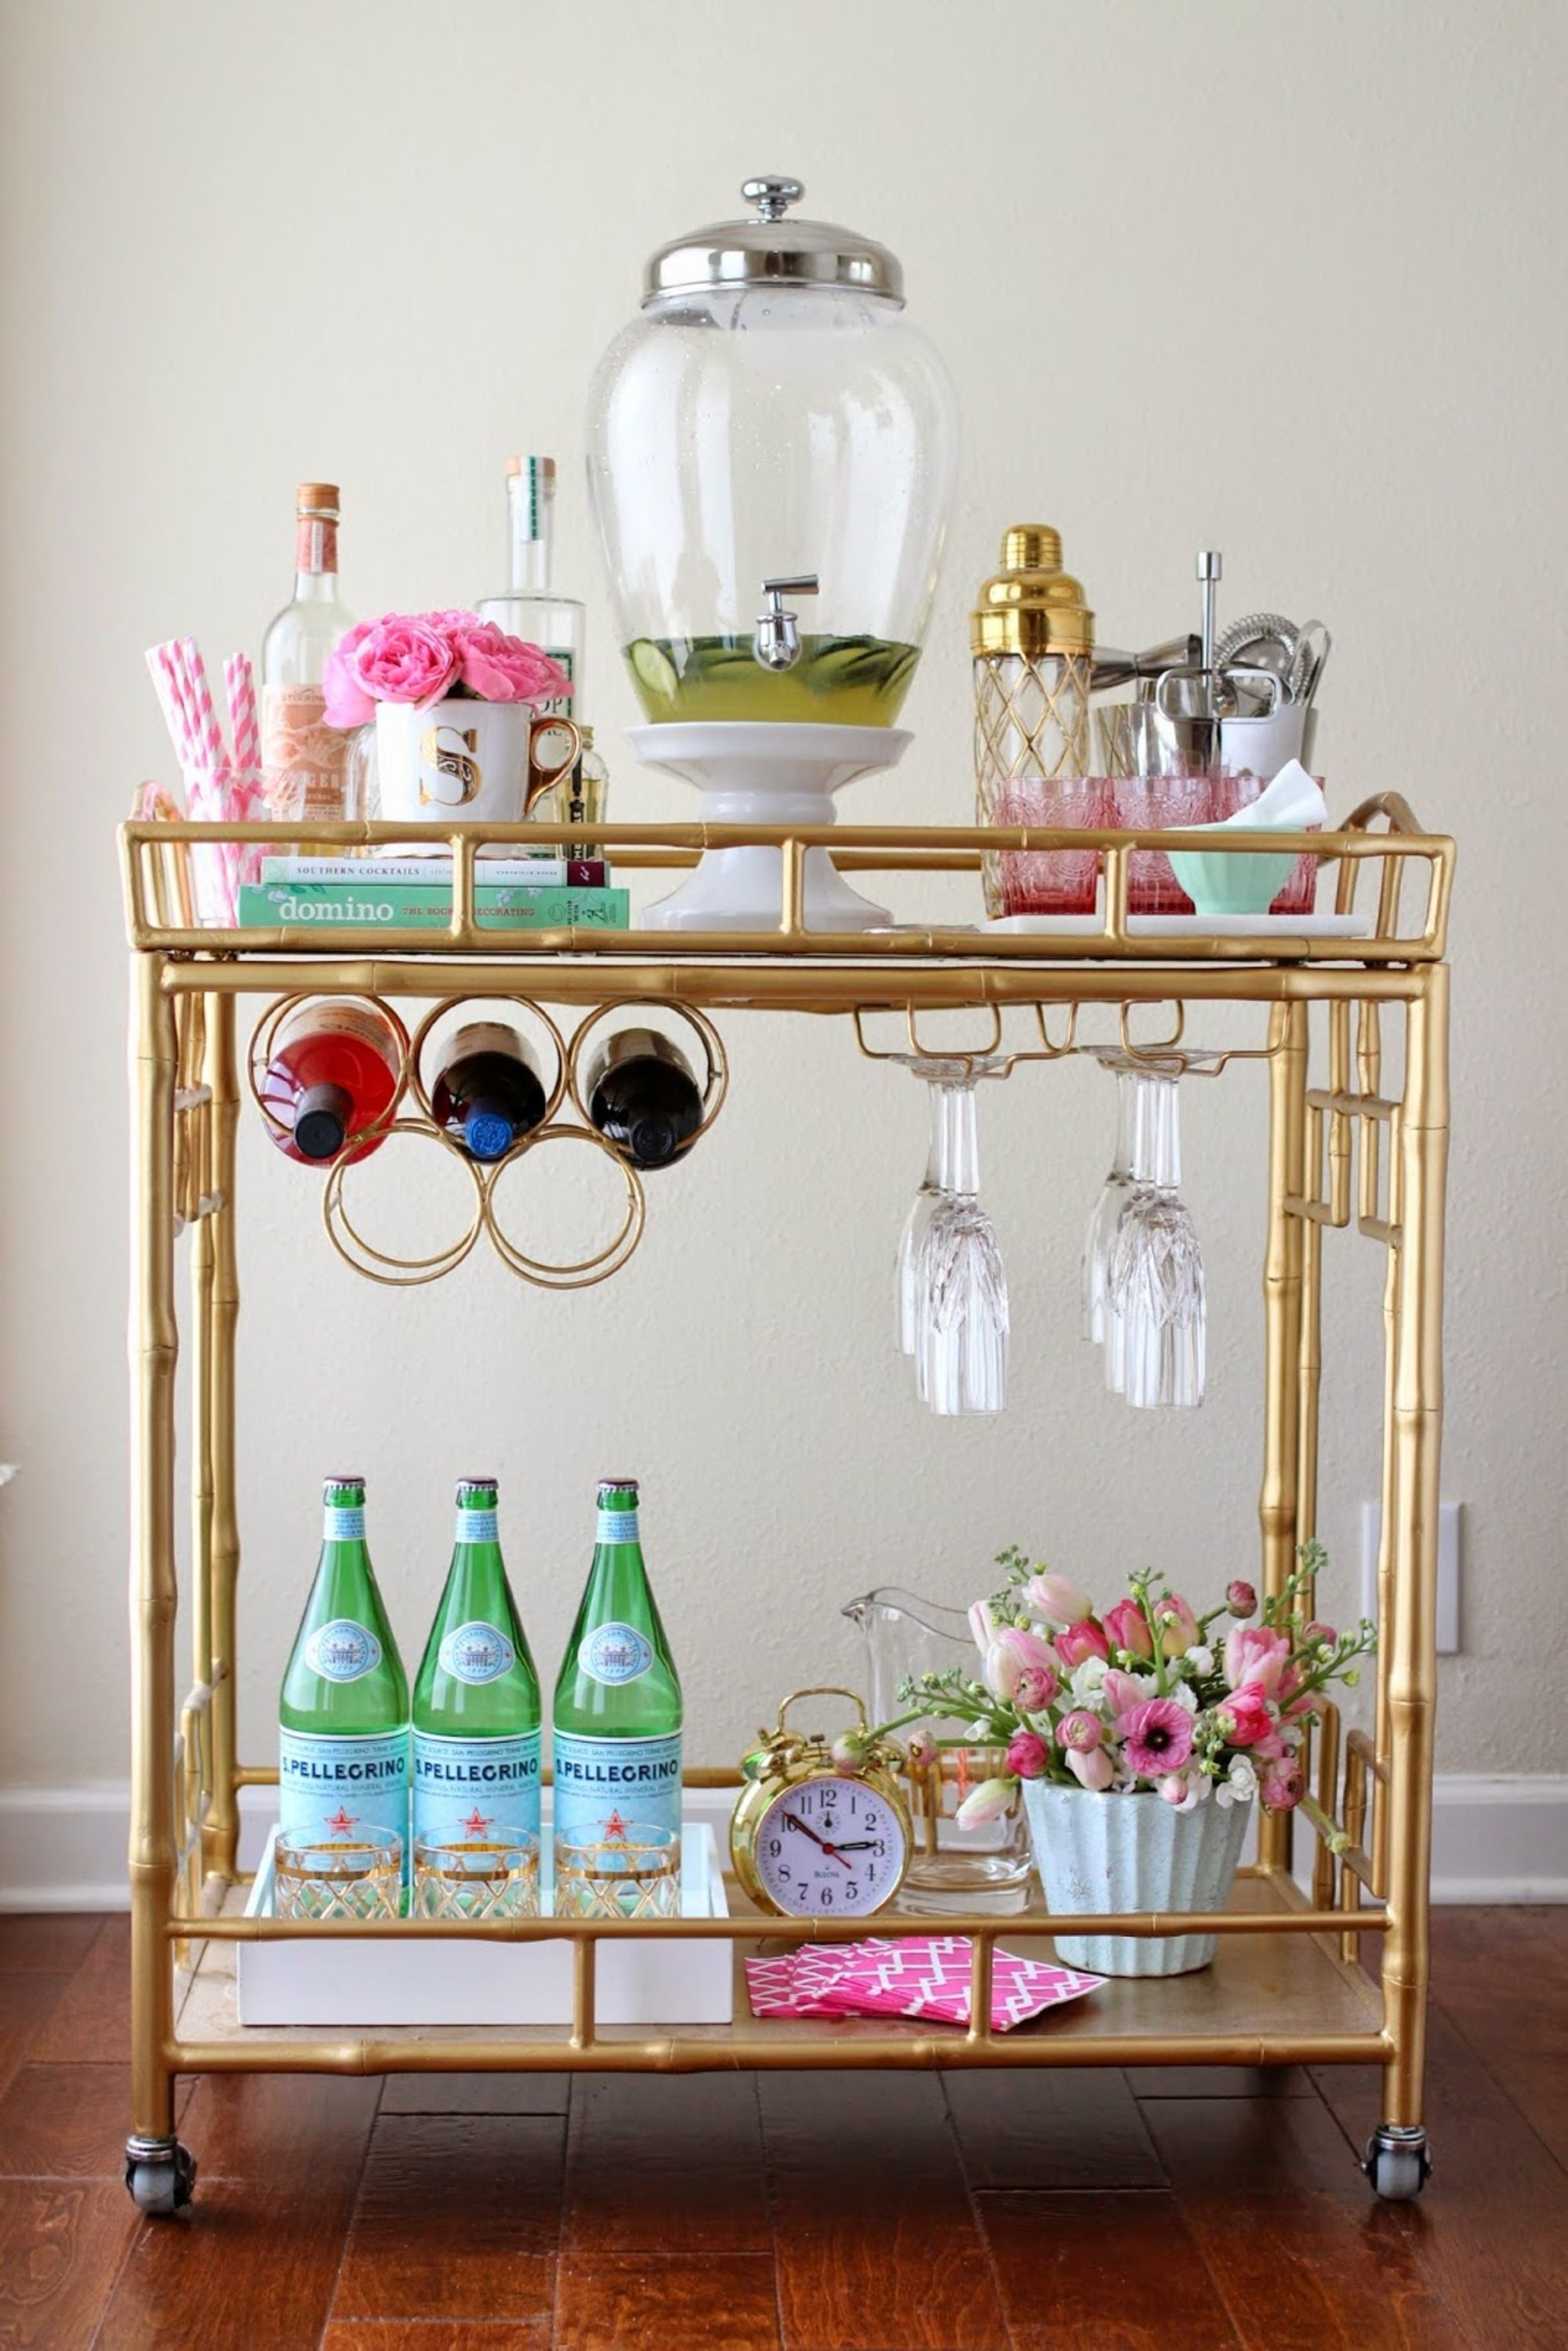 Best 10 Bar Carts for Small Spaces That Will Change Your Decor Forever  KN19